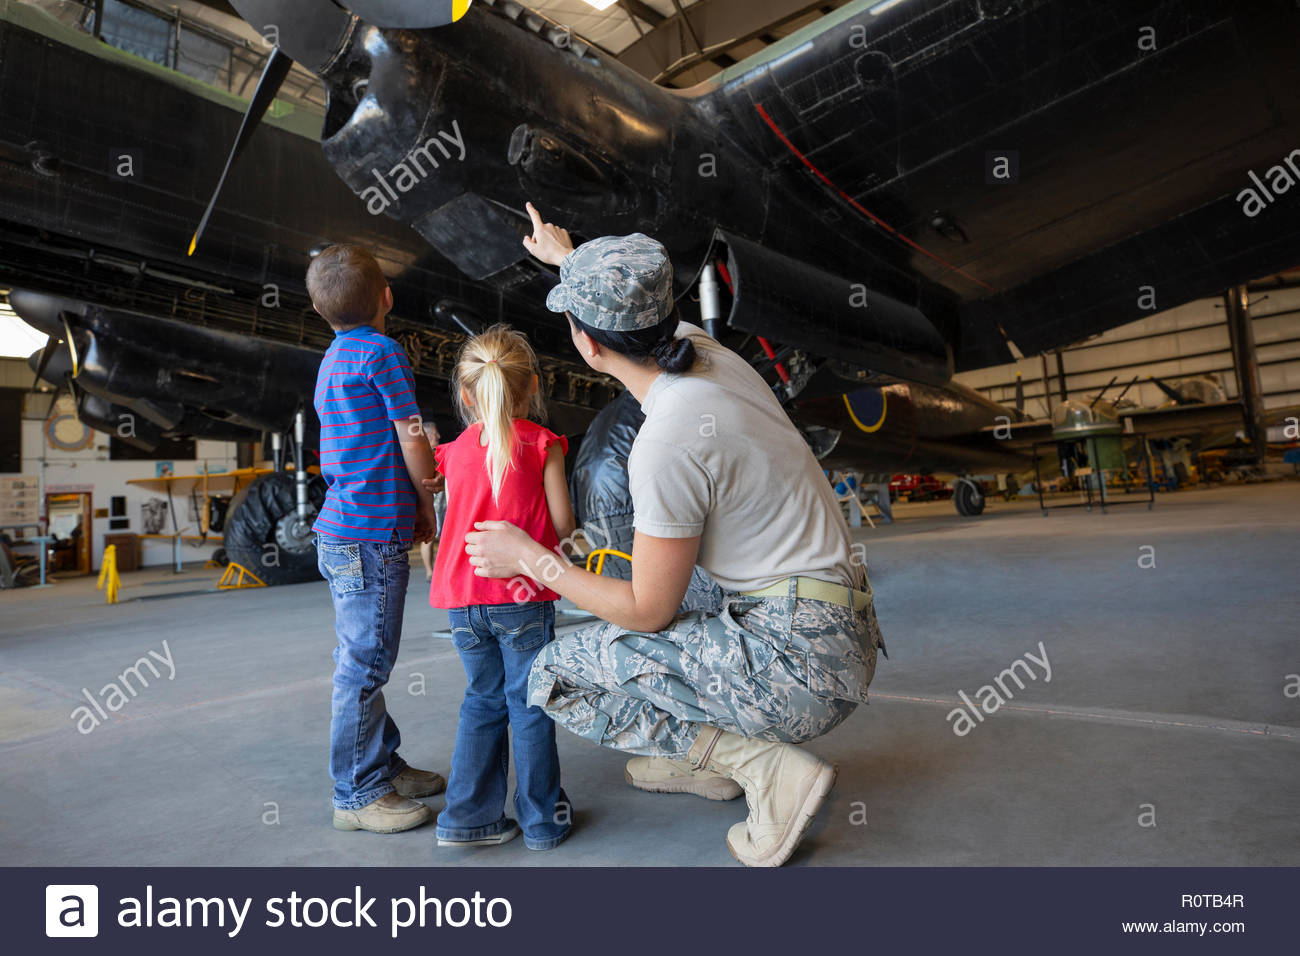 Female army engineer mother showing airplane to children in airplane hangar - Stock Image